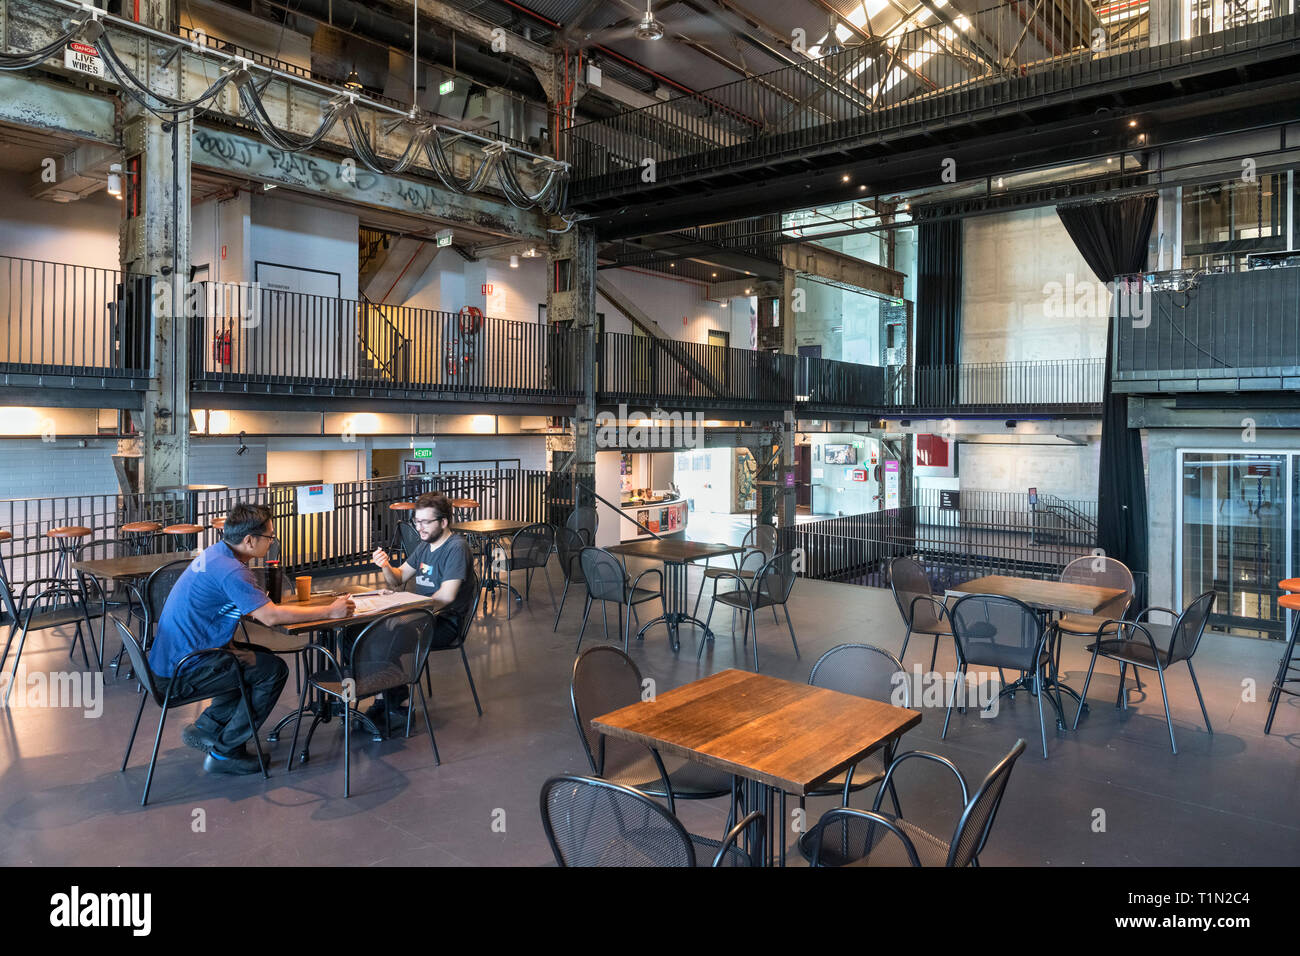 Interior of the Brisbane Powerhouse, an arts centre in a converted power station, Brisbane, Queensland, Australia - Stock Image